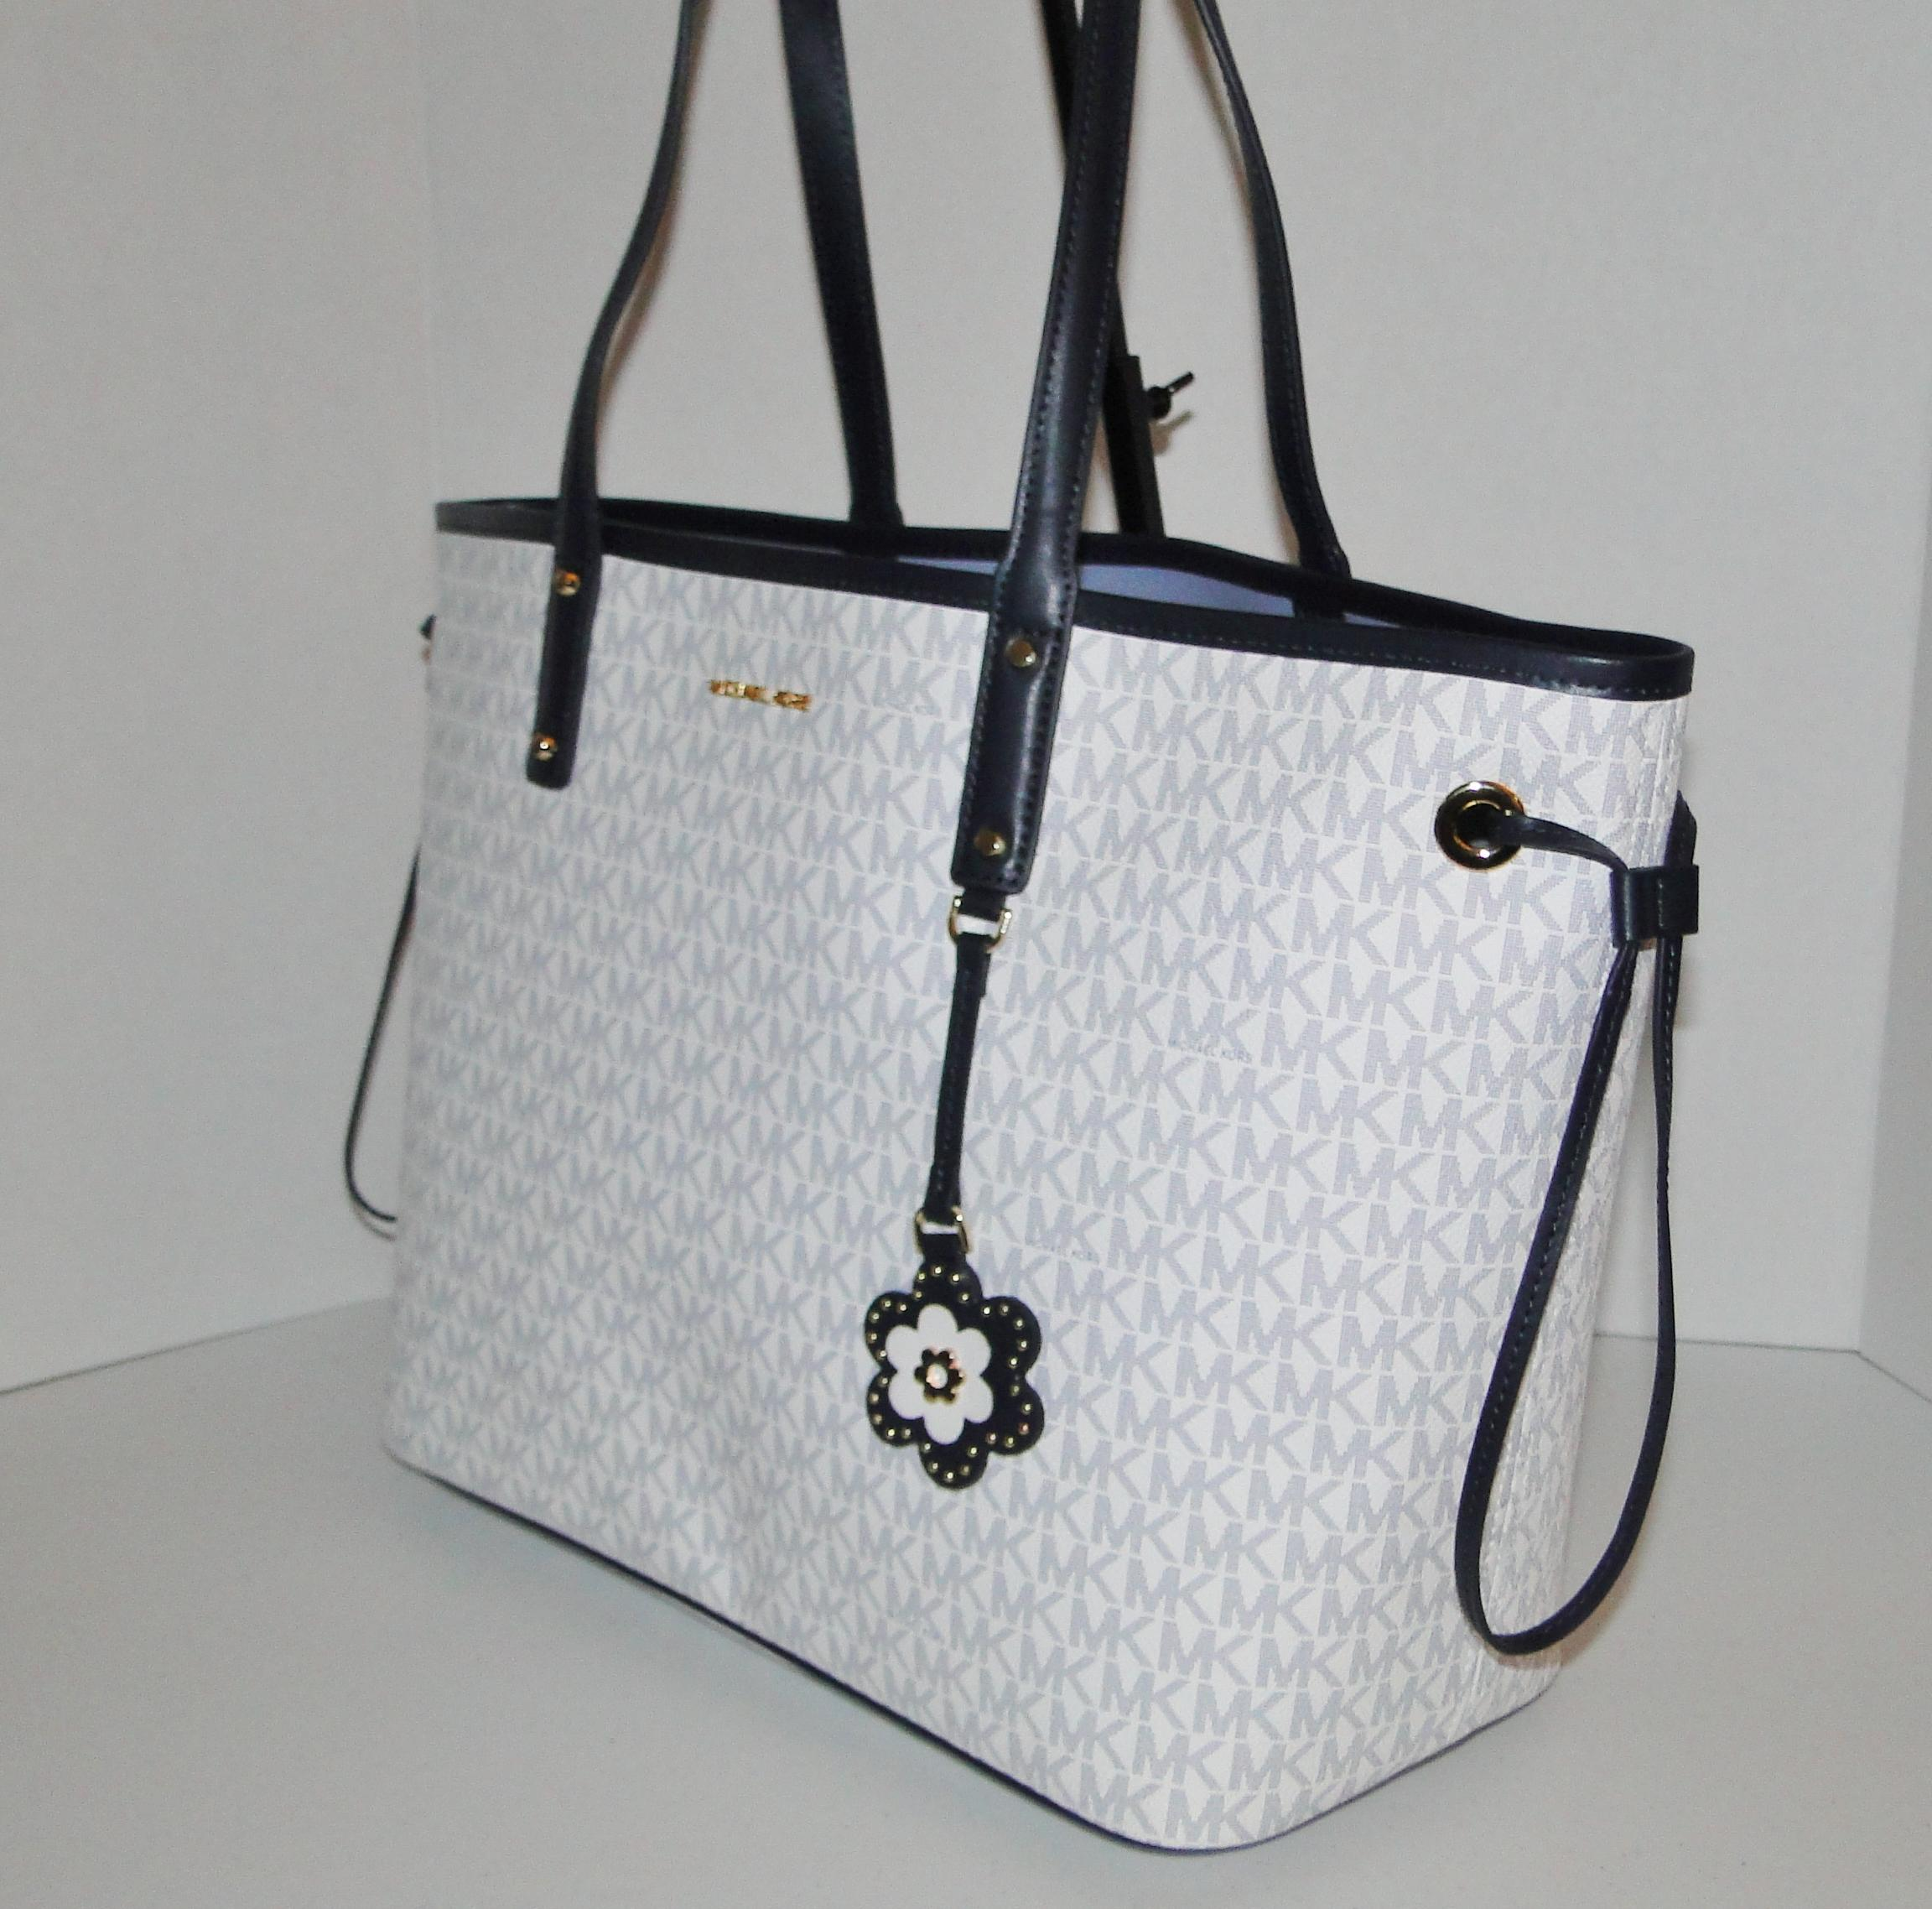 d8678698e692 ... top quality the best attitude 1d321 fa6fe michael kors carter large  signature reversible tote in white